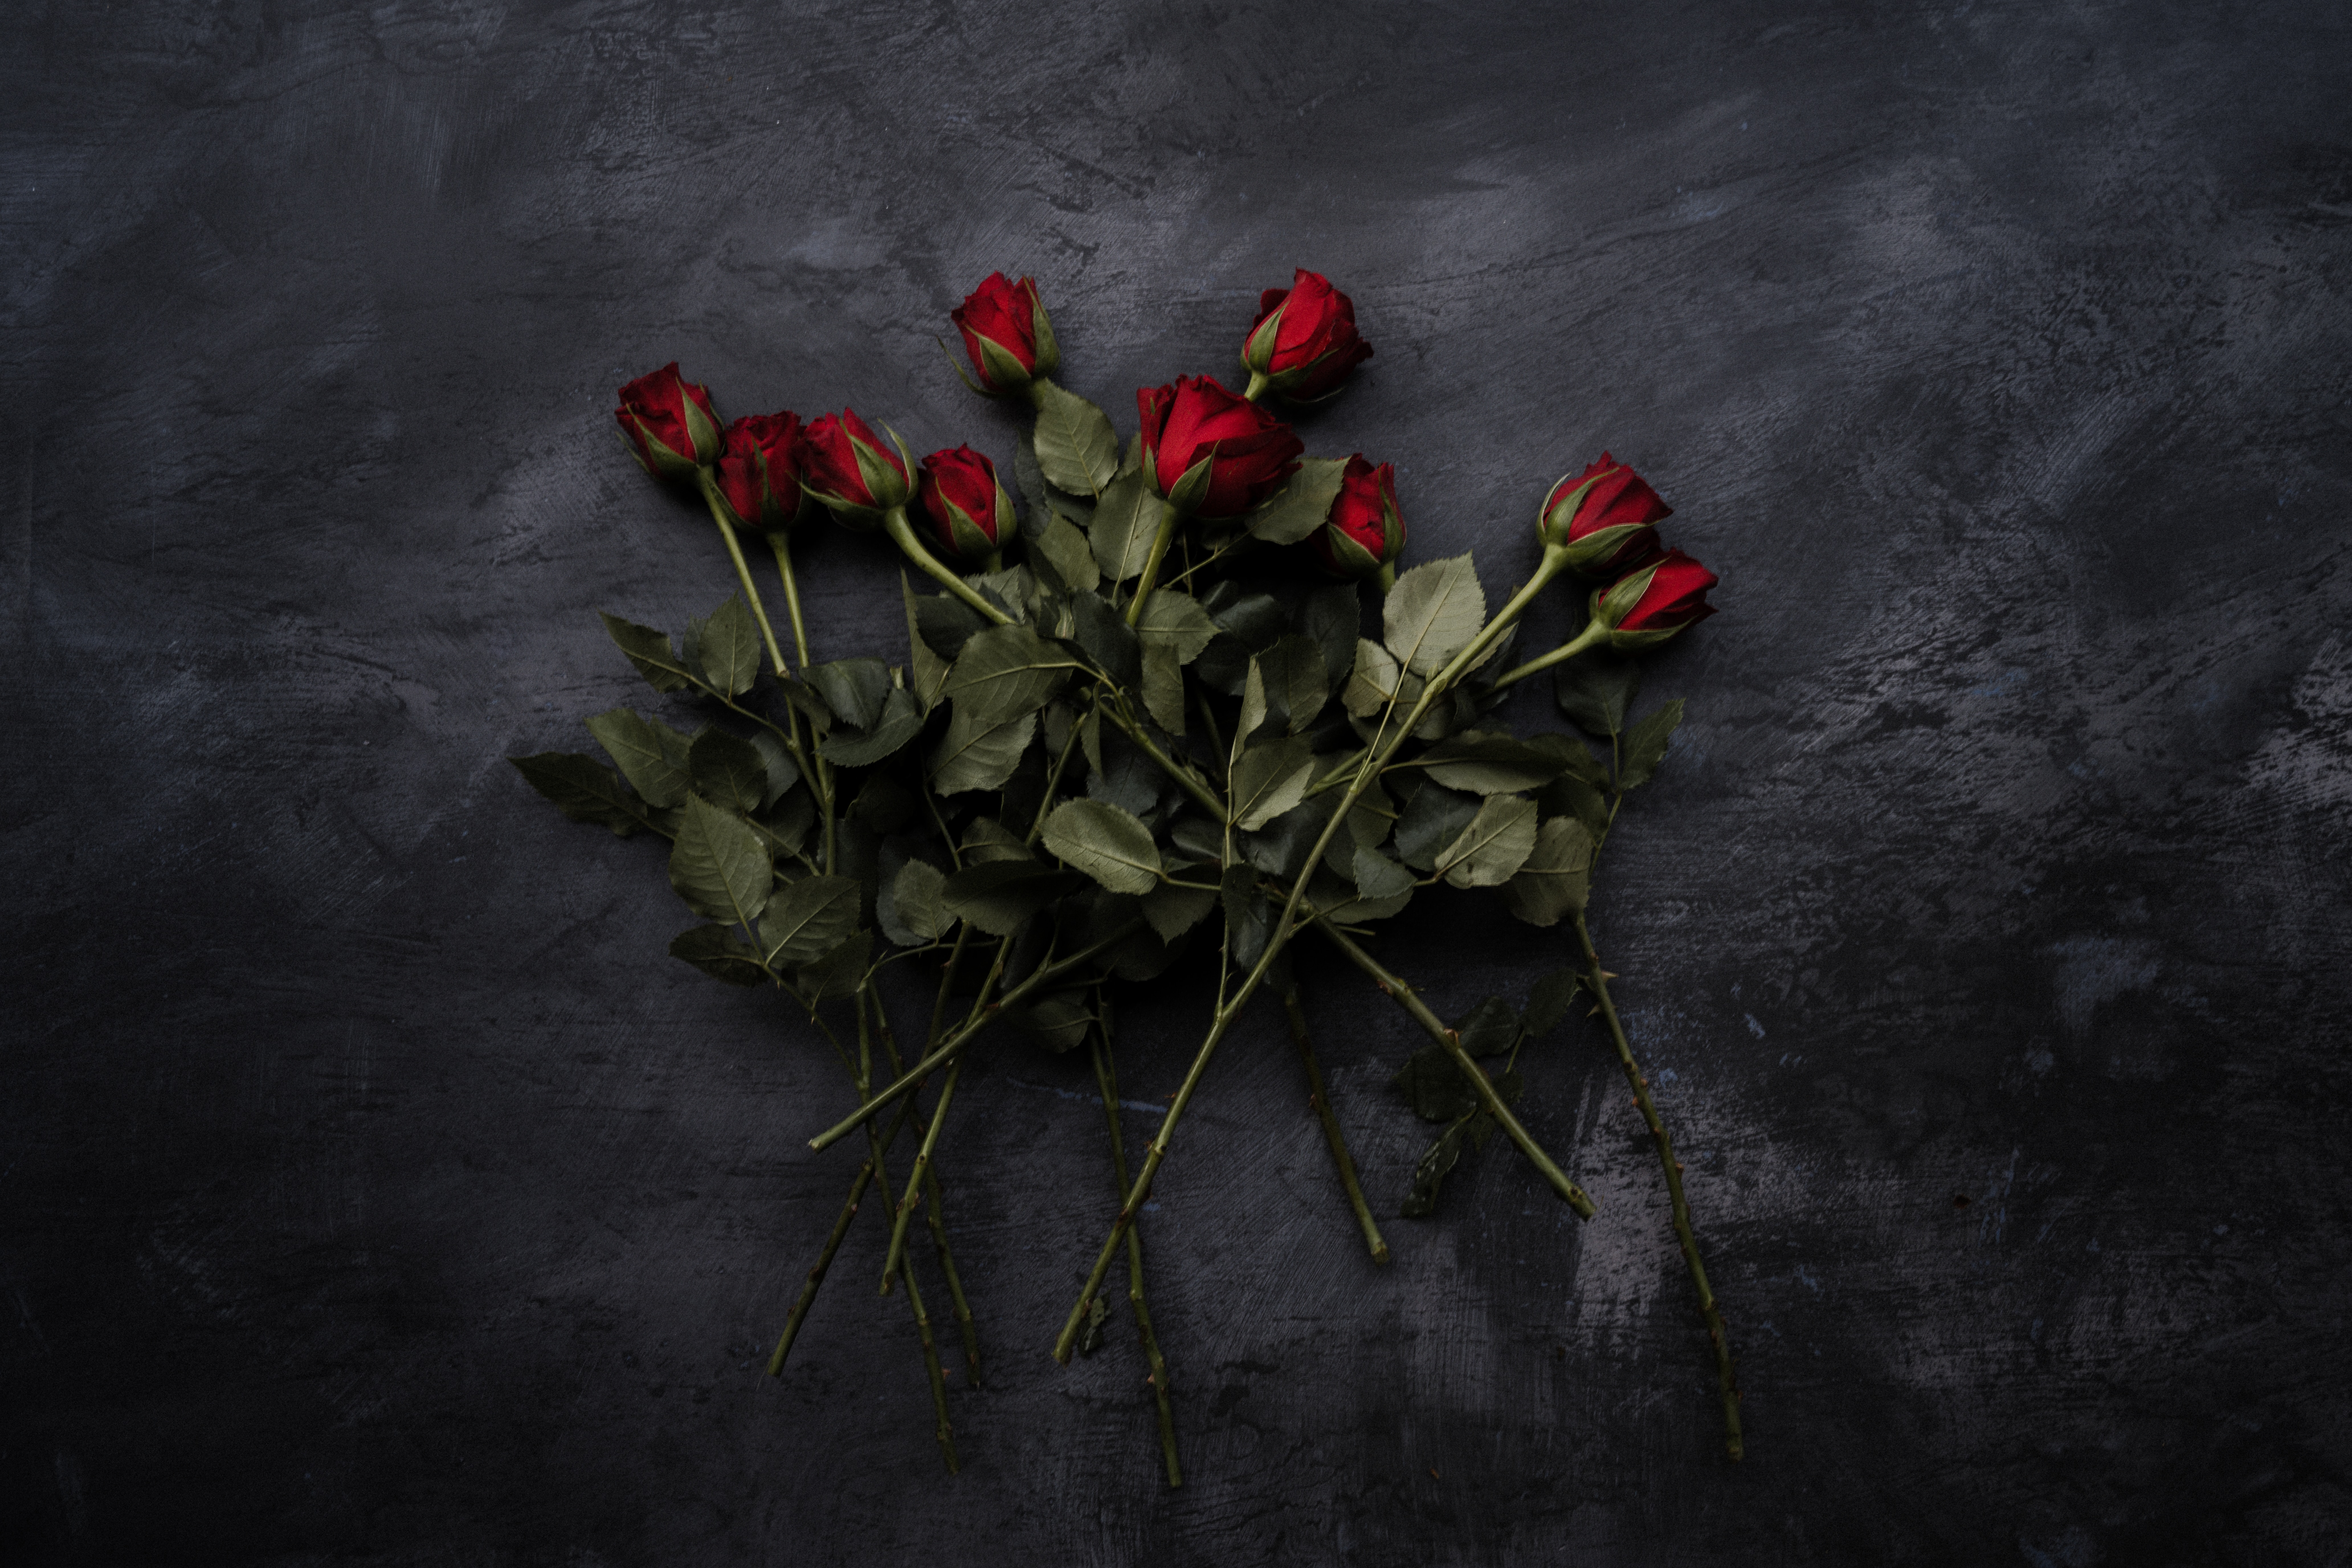 A pile of long-stemmed red roses against a chalky black background.